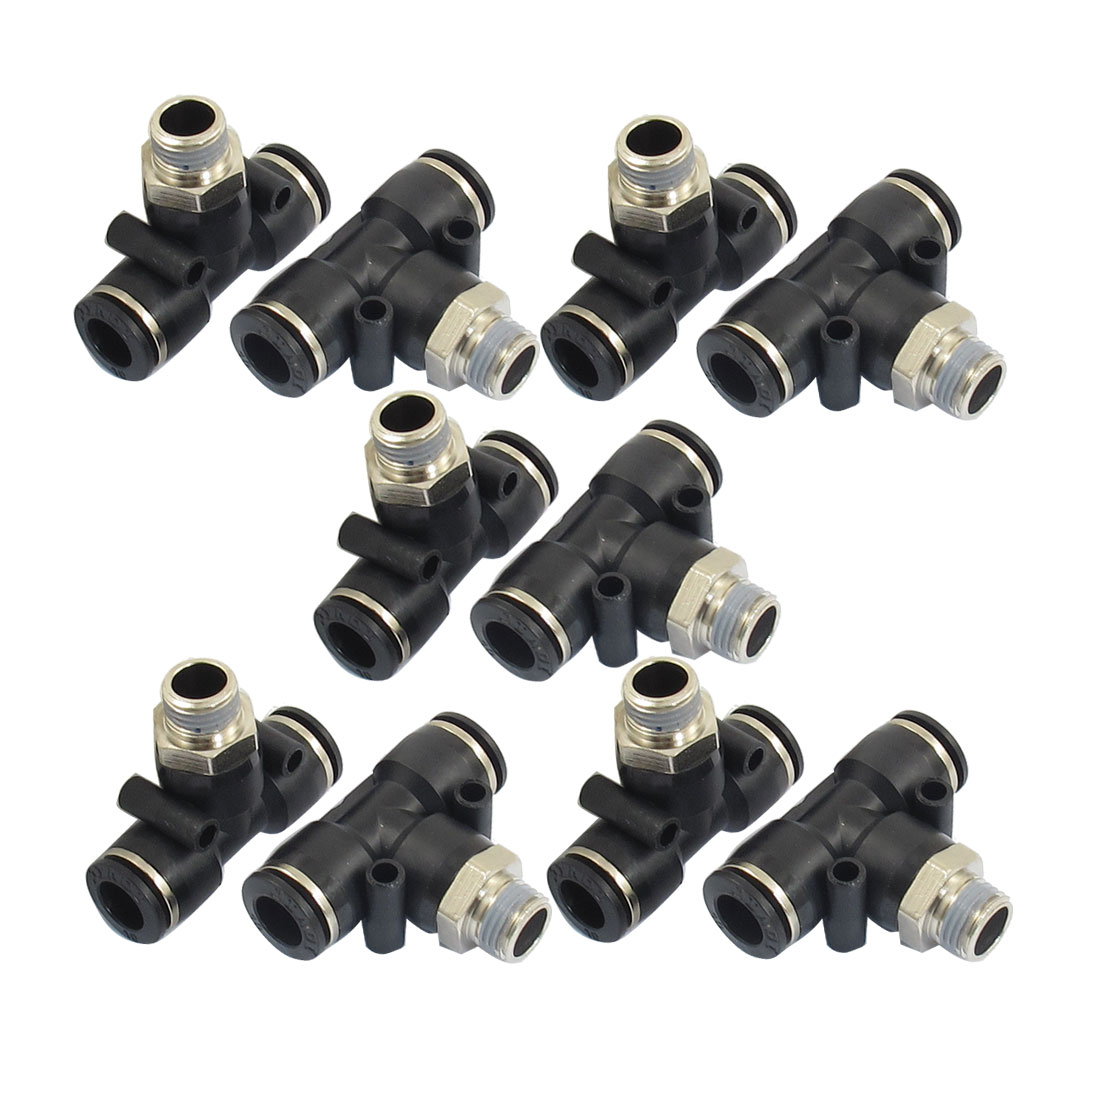 "10 Pcs 1/4"" PT Male Thread 10mm One Touch Push In T Joint Quick Fittings"